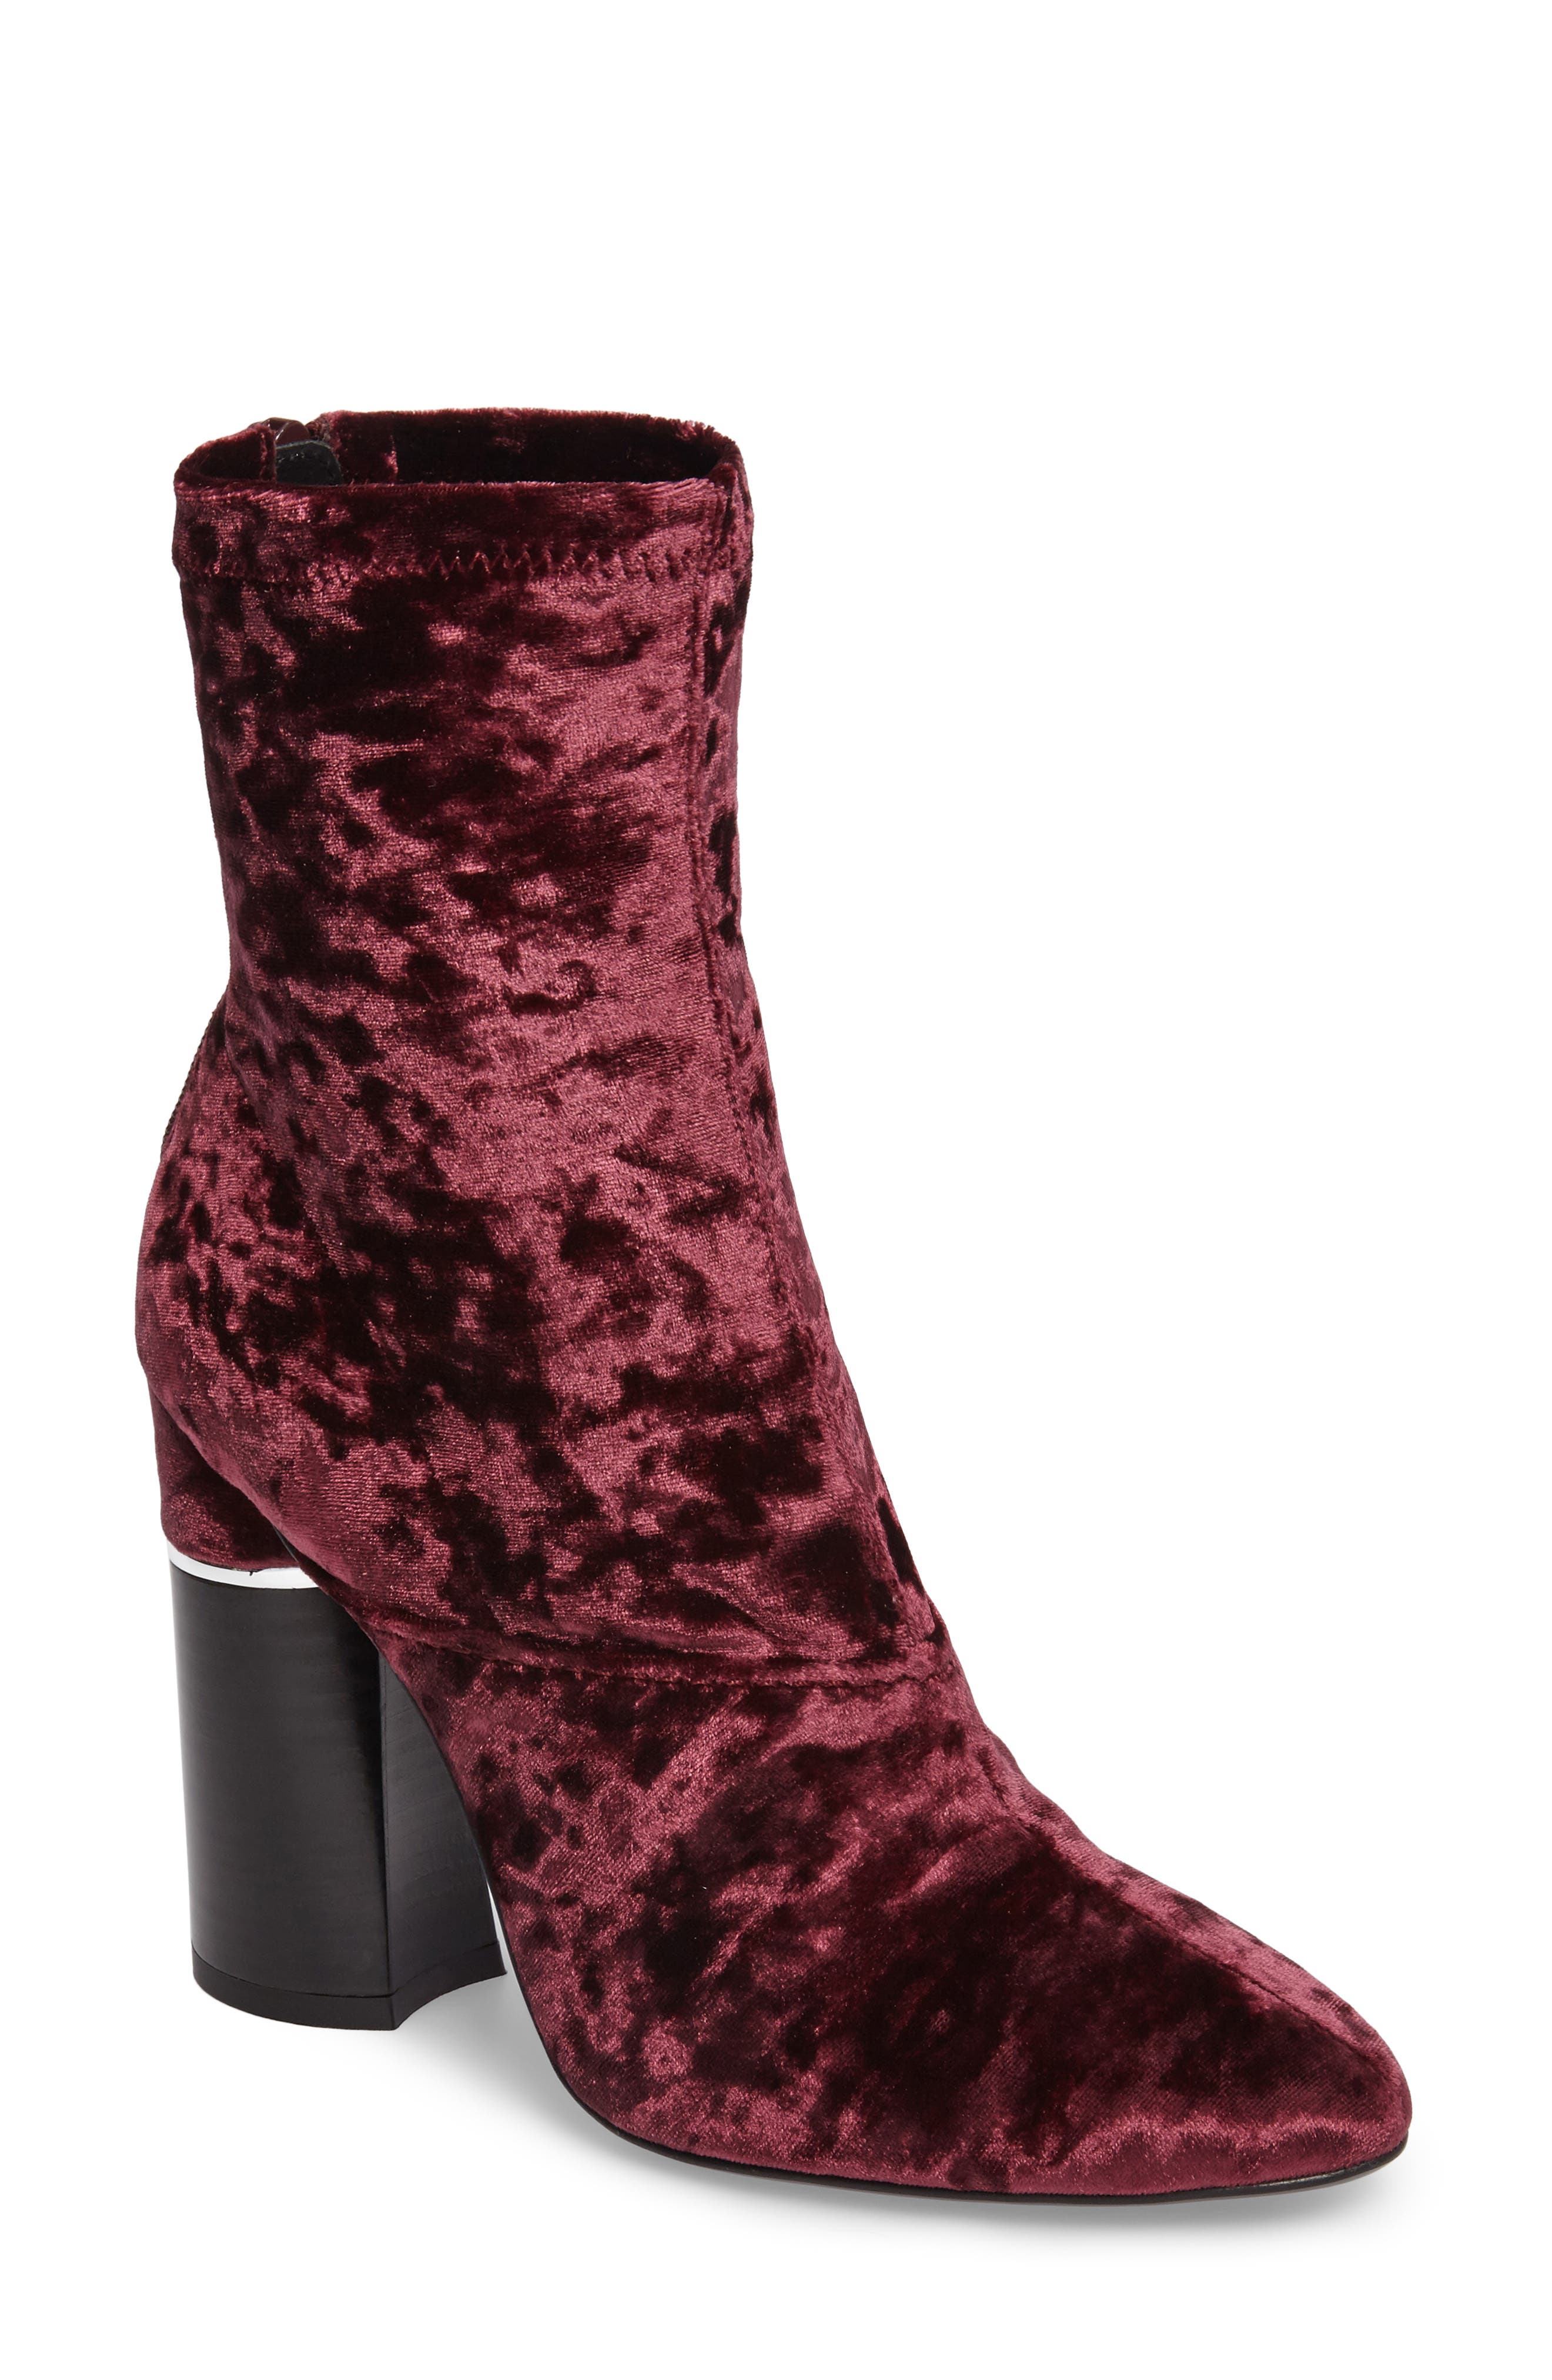 3.1 Phillip Lim 'Kyoto' Crushed Velvet Boot (Women)